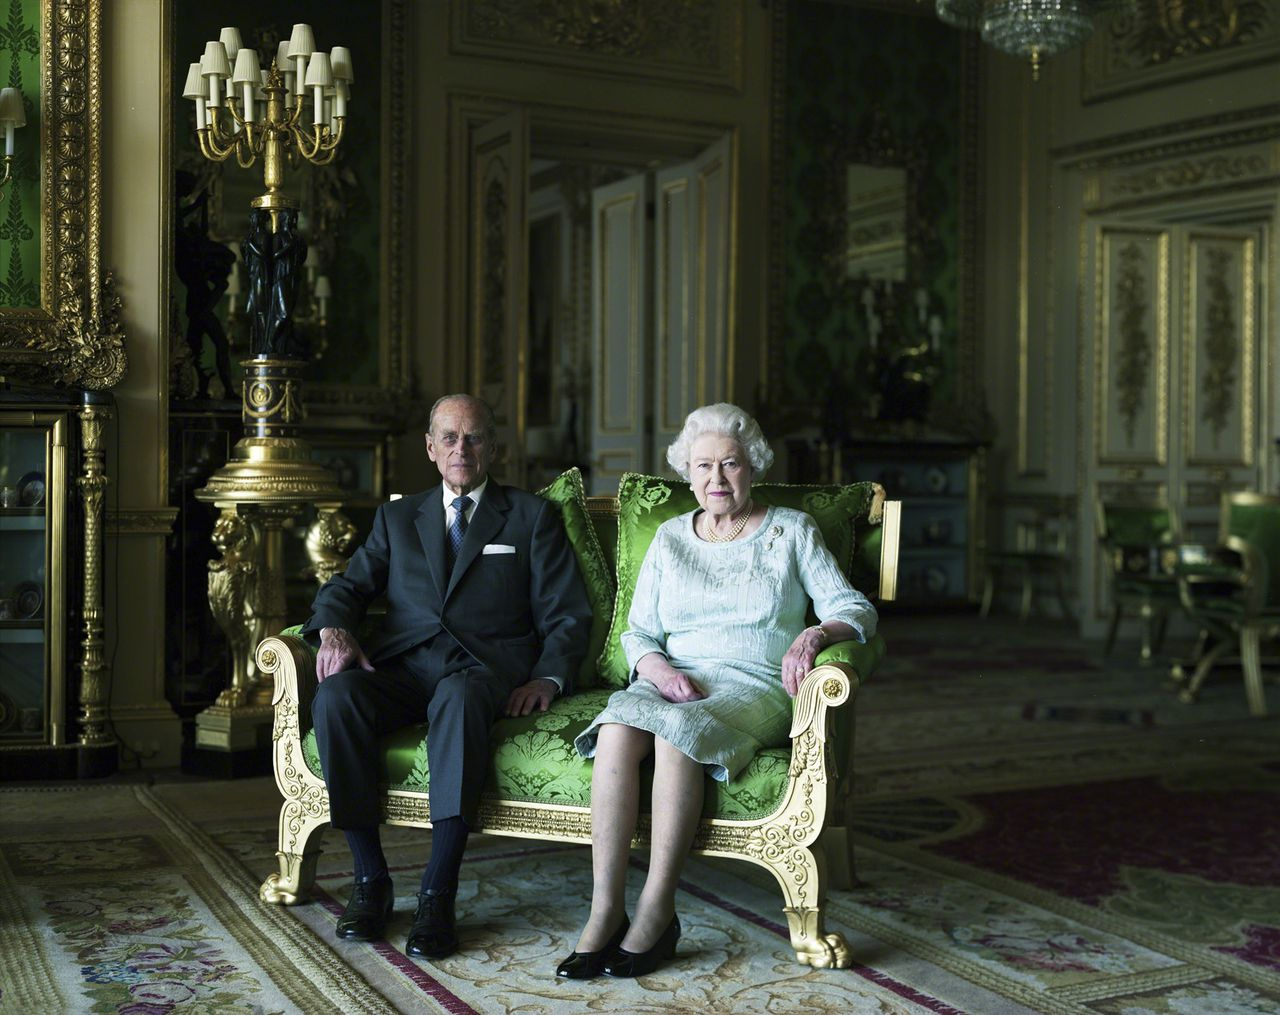 Britain's Queen Elizabeth (R) and Prince Charles pose in a National Portrait Gallery-commissioned photograph by Thomas Struth, released in London June 23, 2011. The portrait was unveiled as part of its touring exhibition The Queen: Art & Image, which opens on Saturday 25 June at the Scottish National Gallery, Edinburgh. REUTERS/© Royal Household/ Thomas Struth/handout (BRITAIN - Tags: ROYALS SOCIETY) ONE TIME USE ONLY IN CONNECTION WITH EXHIBITION THE QUEEN:ART AND IMAGE NO SALES. NO ARCHIVES. FOR EDITORIAL USE ONLY. NOT FOR SALE FOR MARKETING OR ADVERTISING CAMPAIGNS. THIS IMAGE HAS BEEN SUPPLIED BY A THIRD PARTY. IT IS DISTRIBUTED, EXACTLY AS RECEIVED BY REUTERS, AS A SERVICE TO CLIENTS. NO THIRD PARTY SALES. NOT FOR USE BY REUTERS THIRD PARTY DISTRIBUTORS. TEMPLATE OUT